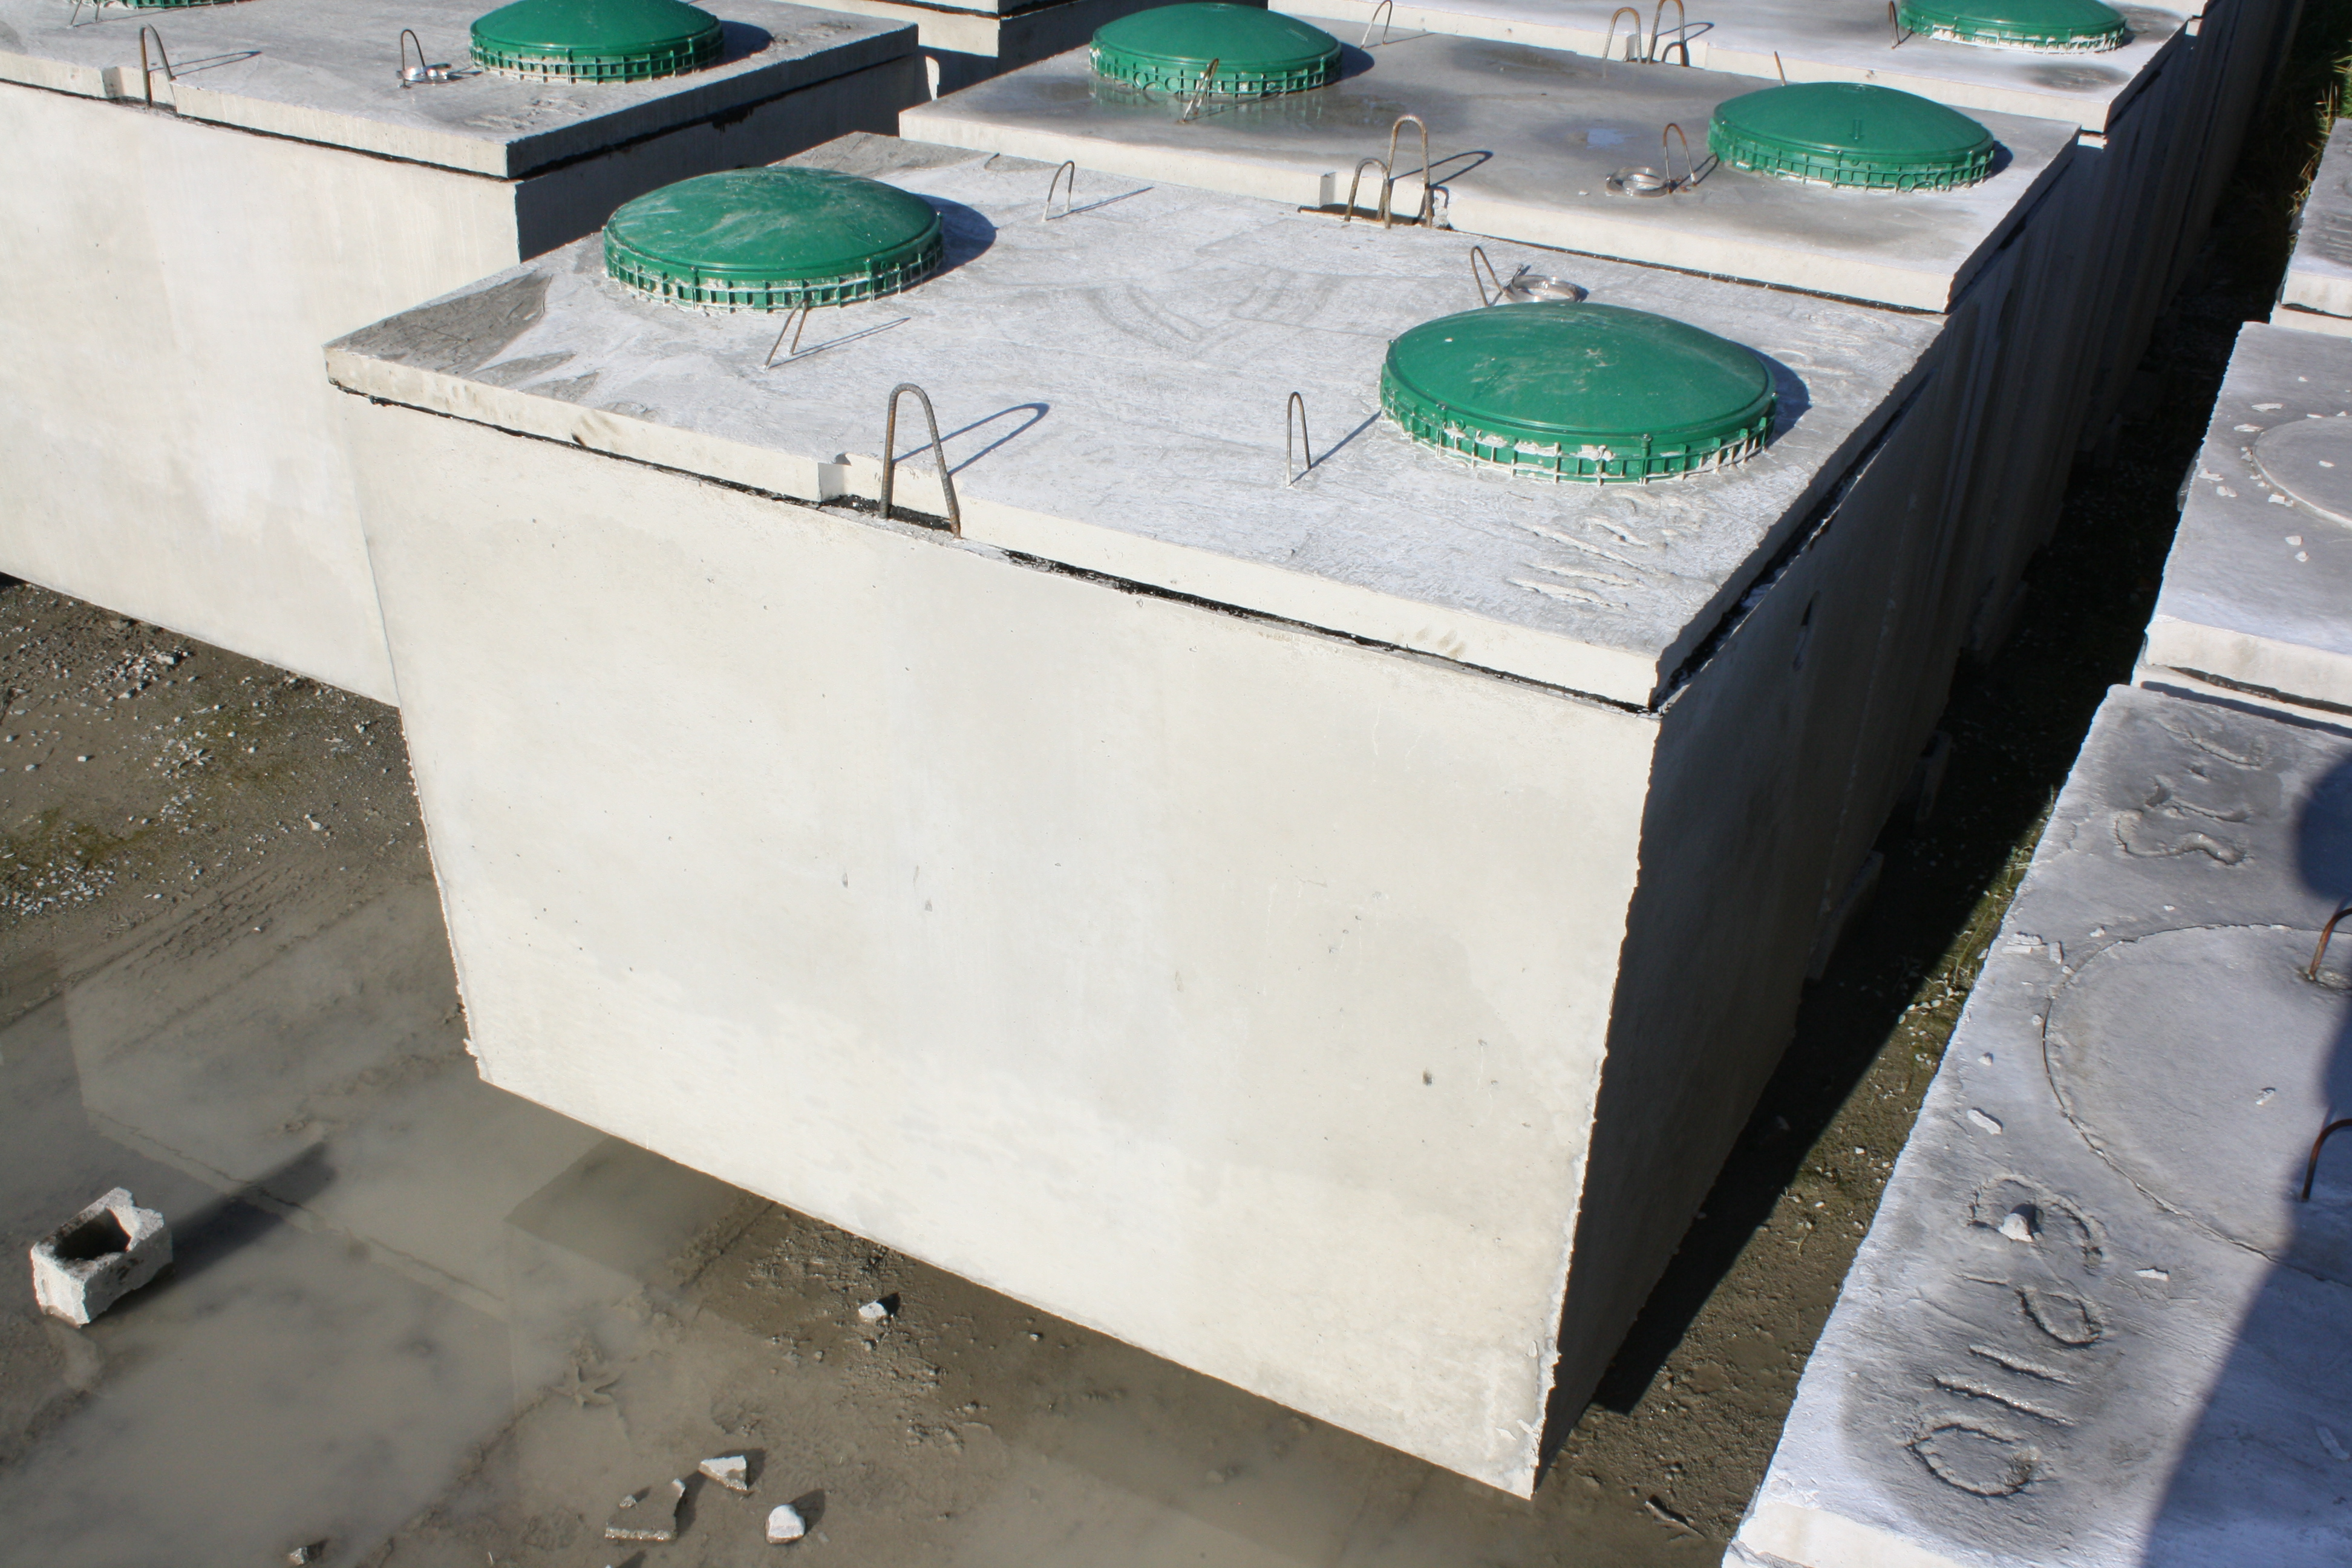 Two Compartment septic with risers